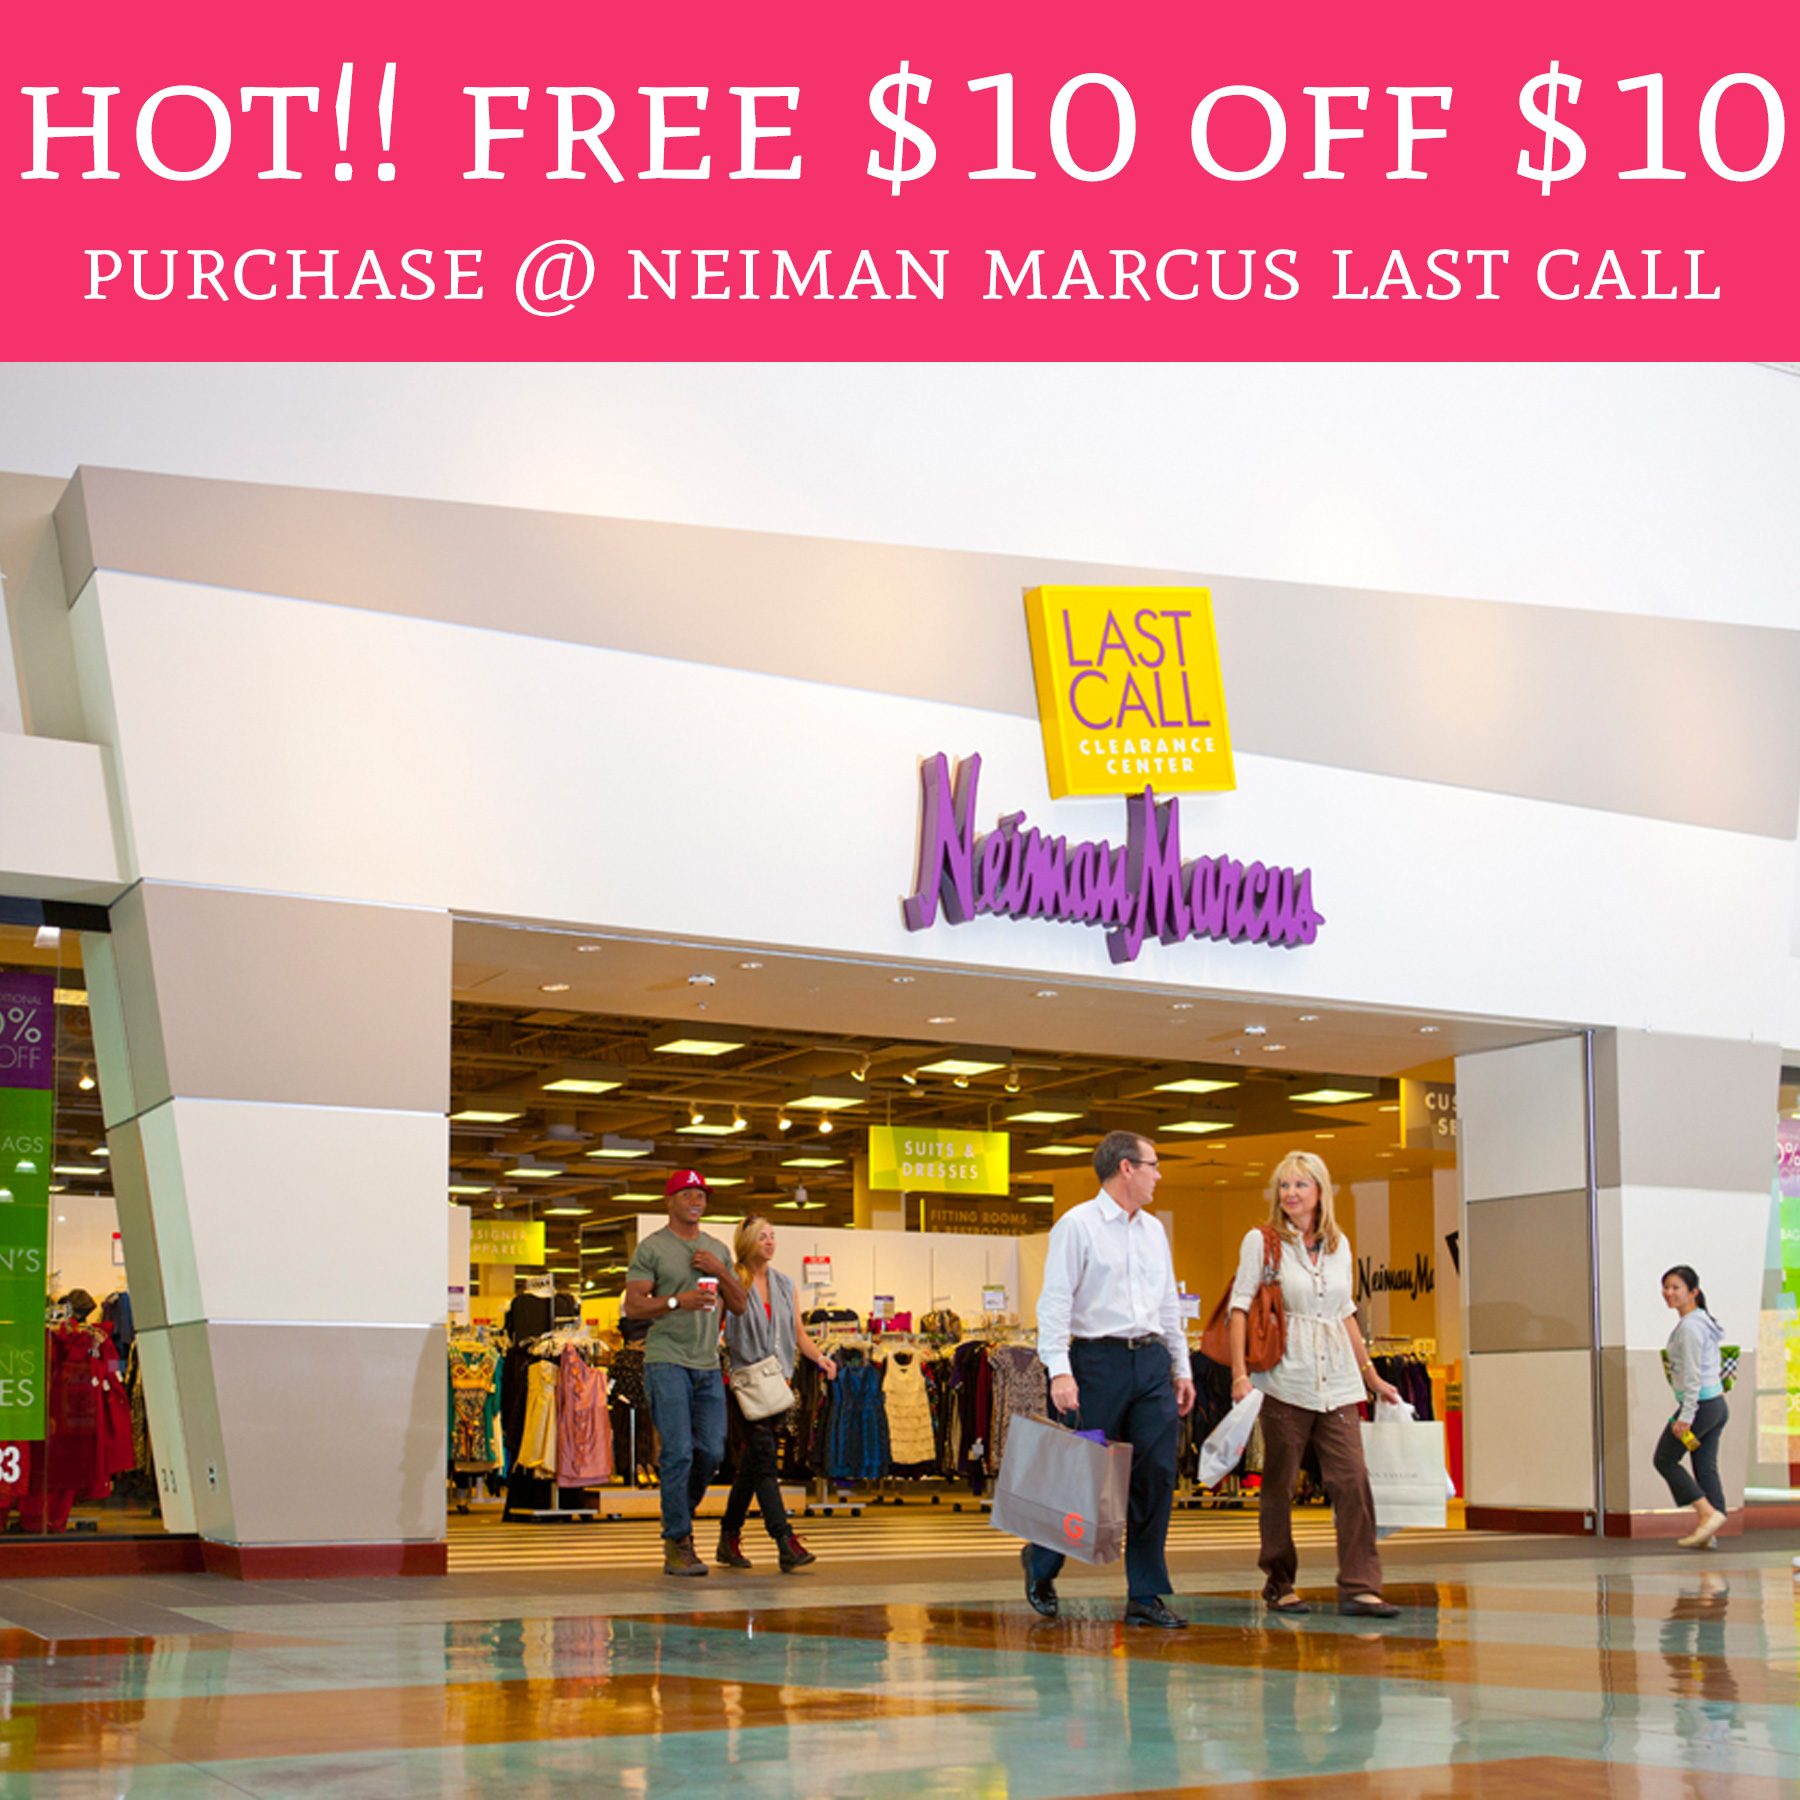 k Followers, Following, 1, Posts - See Instagram photos and videos from Neiman Marcus Last Call (@lastcallnm).